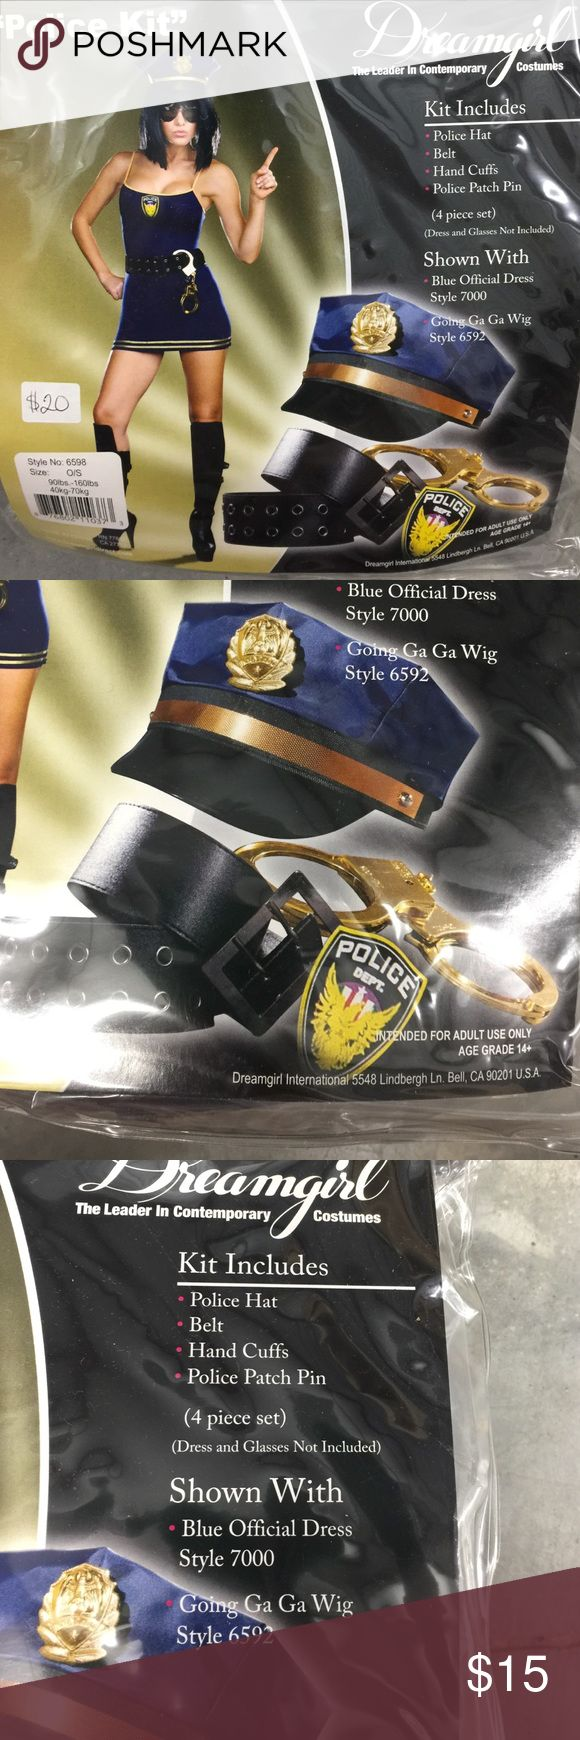 Dreamgirl Police costume Kit Perfect for Halloween! Easy to add to and dress or top & pants. Dreamgirl Accessories Hats